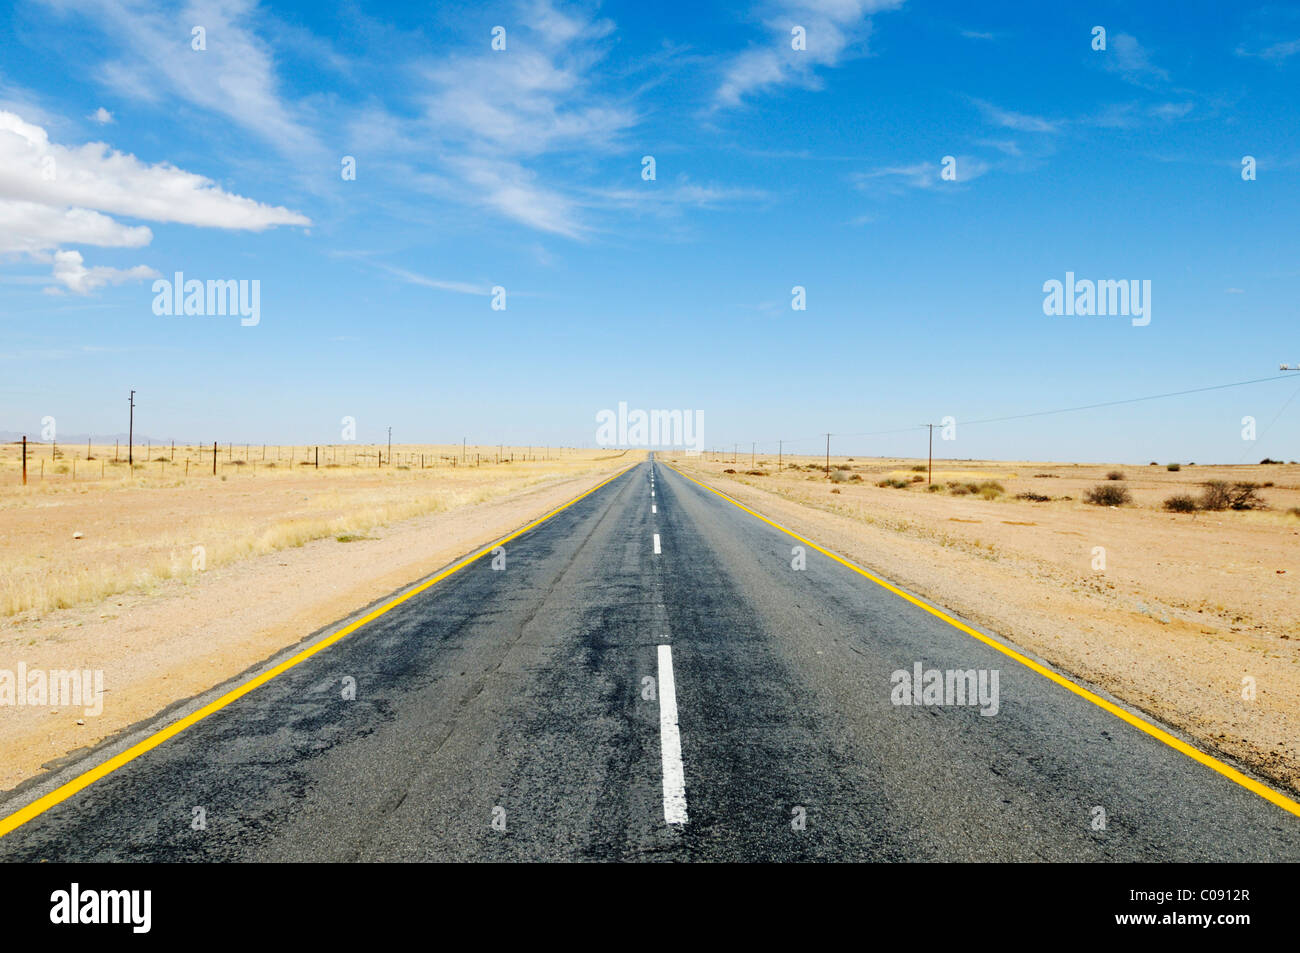 Lonely deserted road in the Namibian desert between Windhoek and Swakopmund, Namibia, Africa - Stock Image